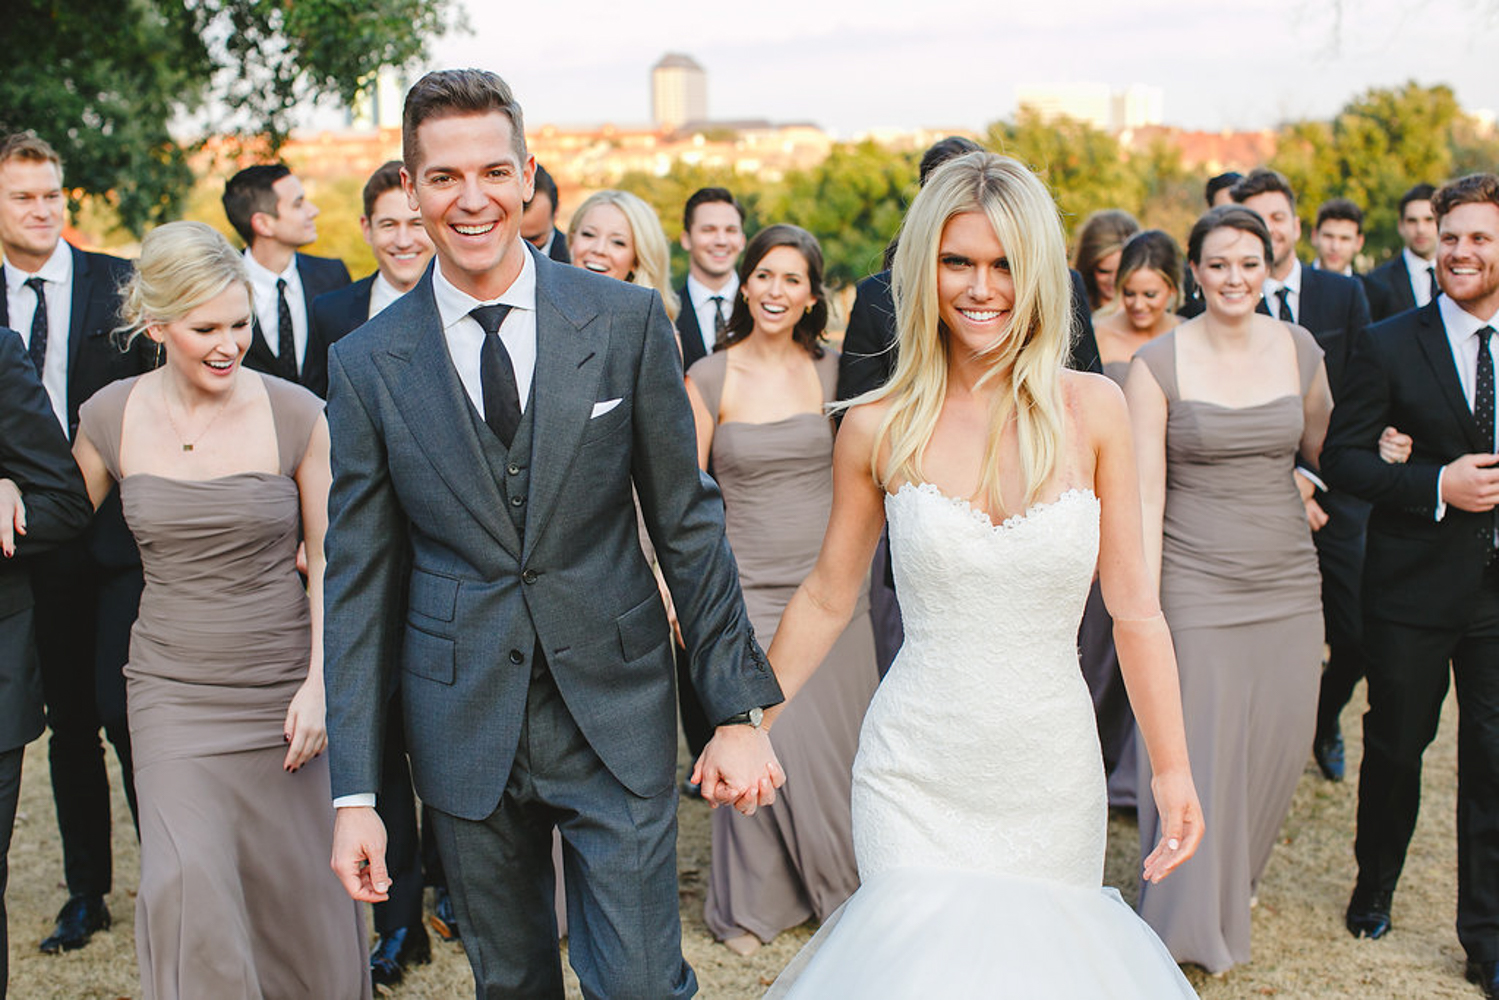 JasonKennedy.LaurenScruggs.DallasWedding1.jpg